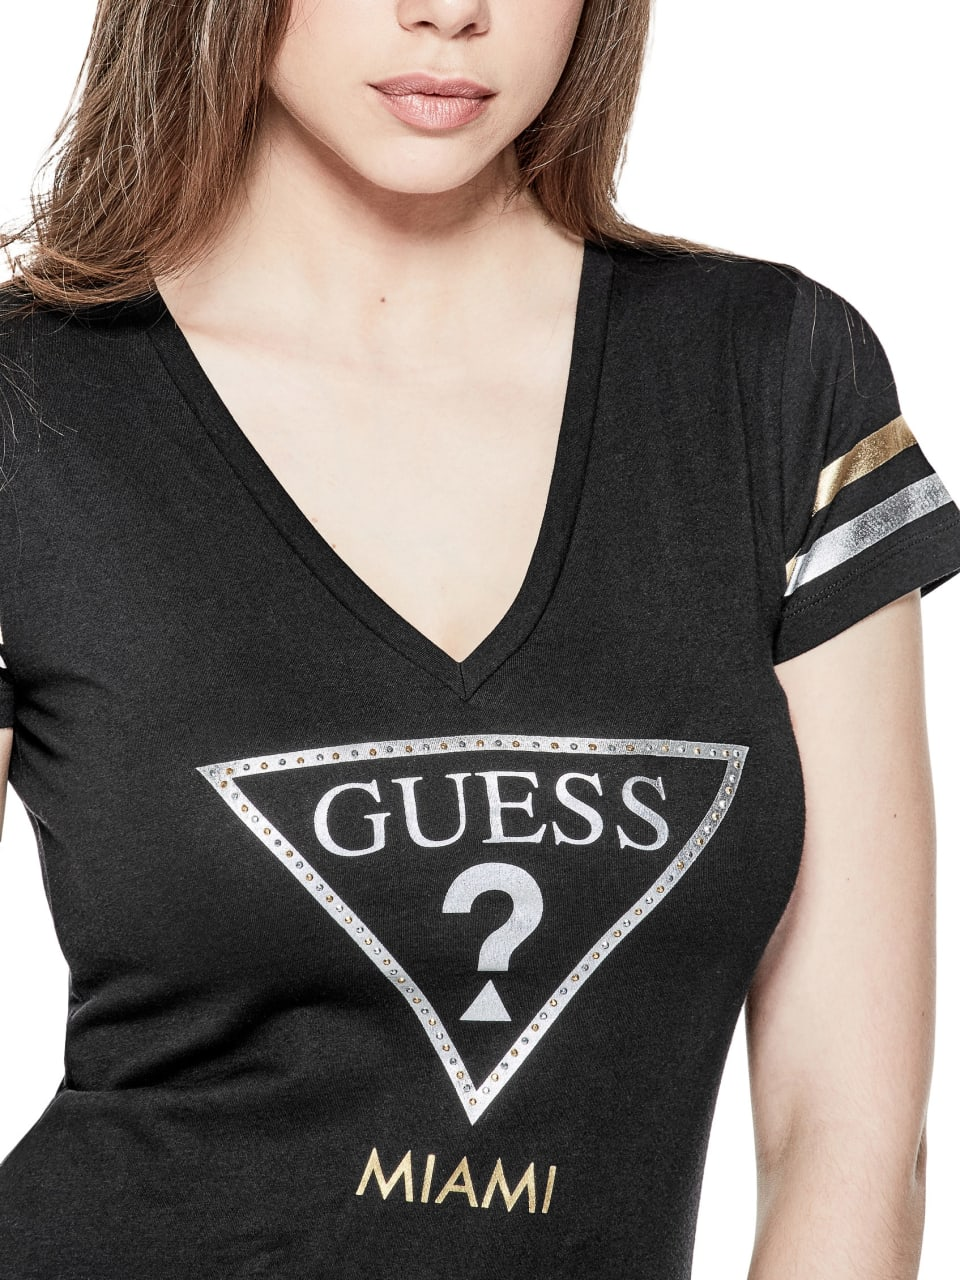 GUESS-Factory-Women-039-s-Miami-City-V-Neck-Varsity-Short-Sleeve-Tee thumbnail 7